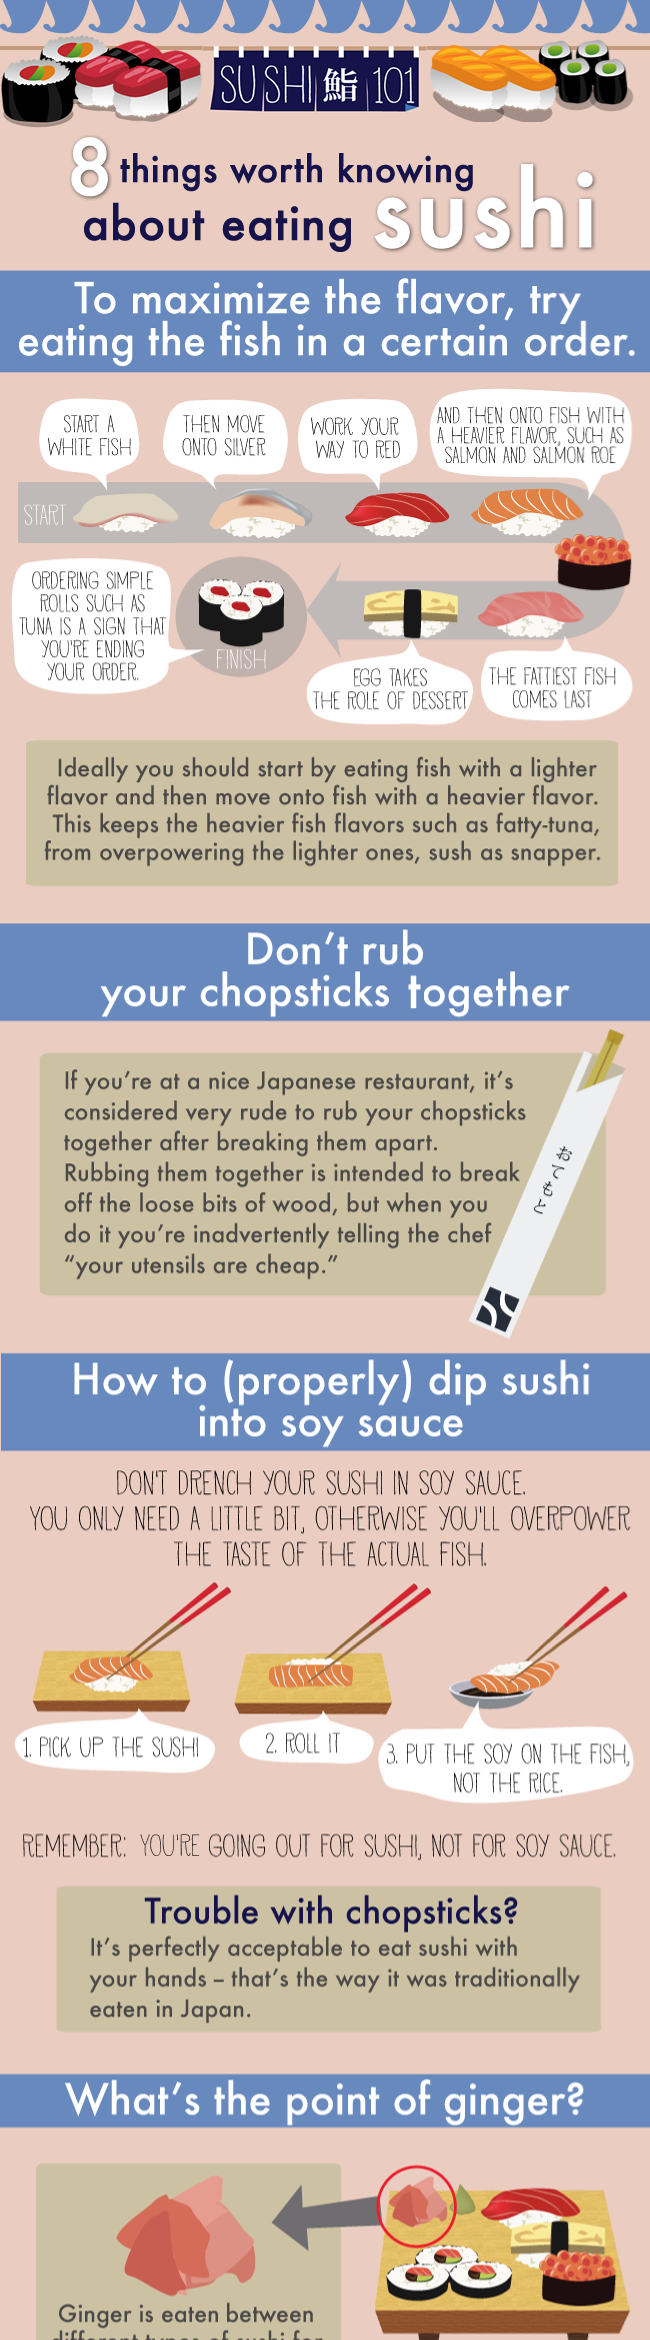 Sushi infographic 1